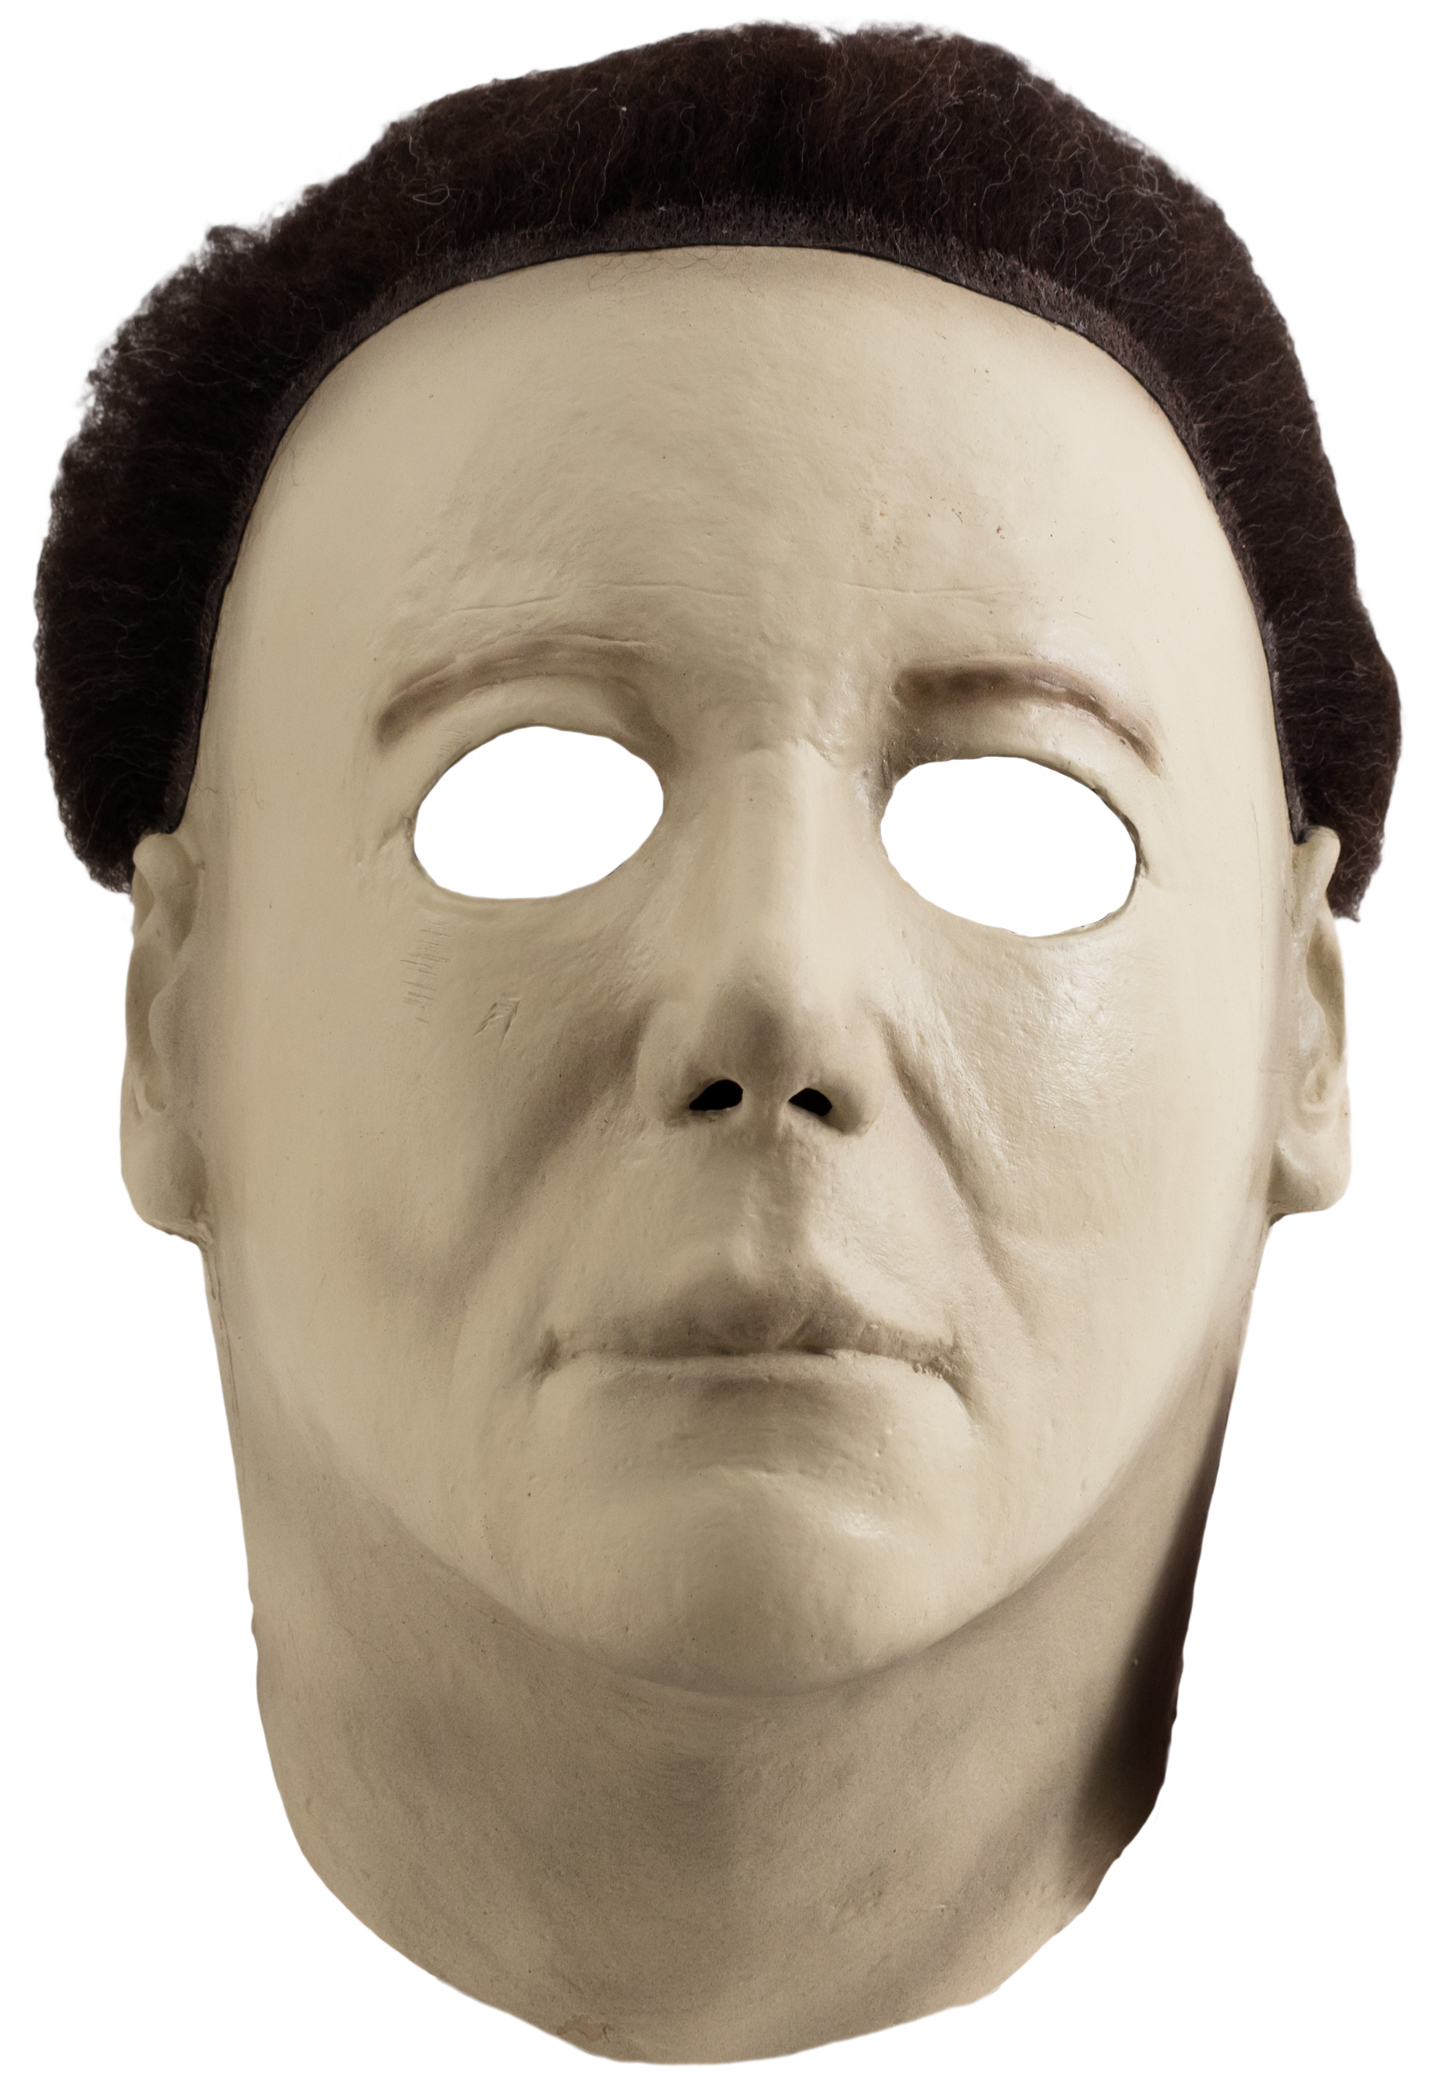 Miamax Halloween H20 Michael Myers Deluxe Full Head Mask, Beige ...